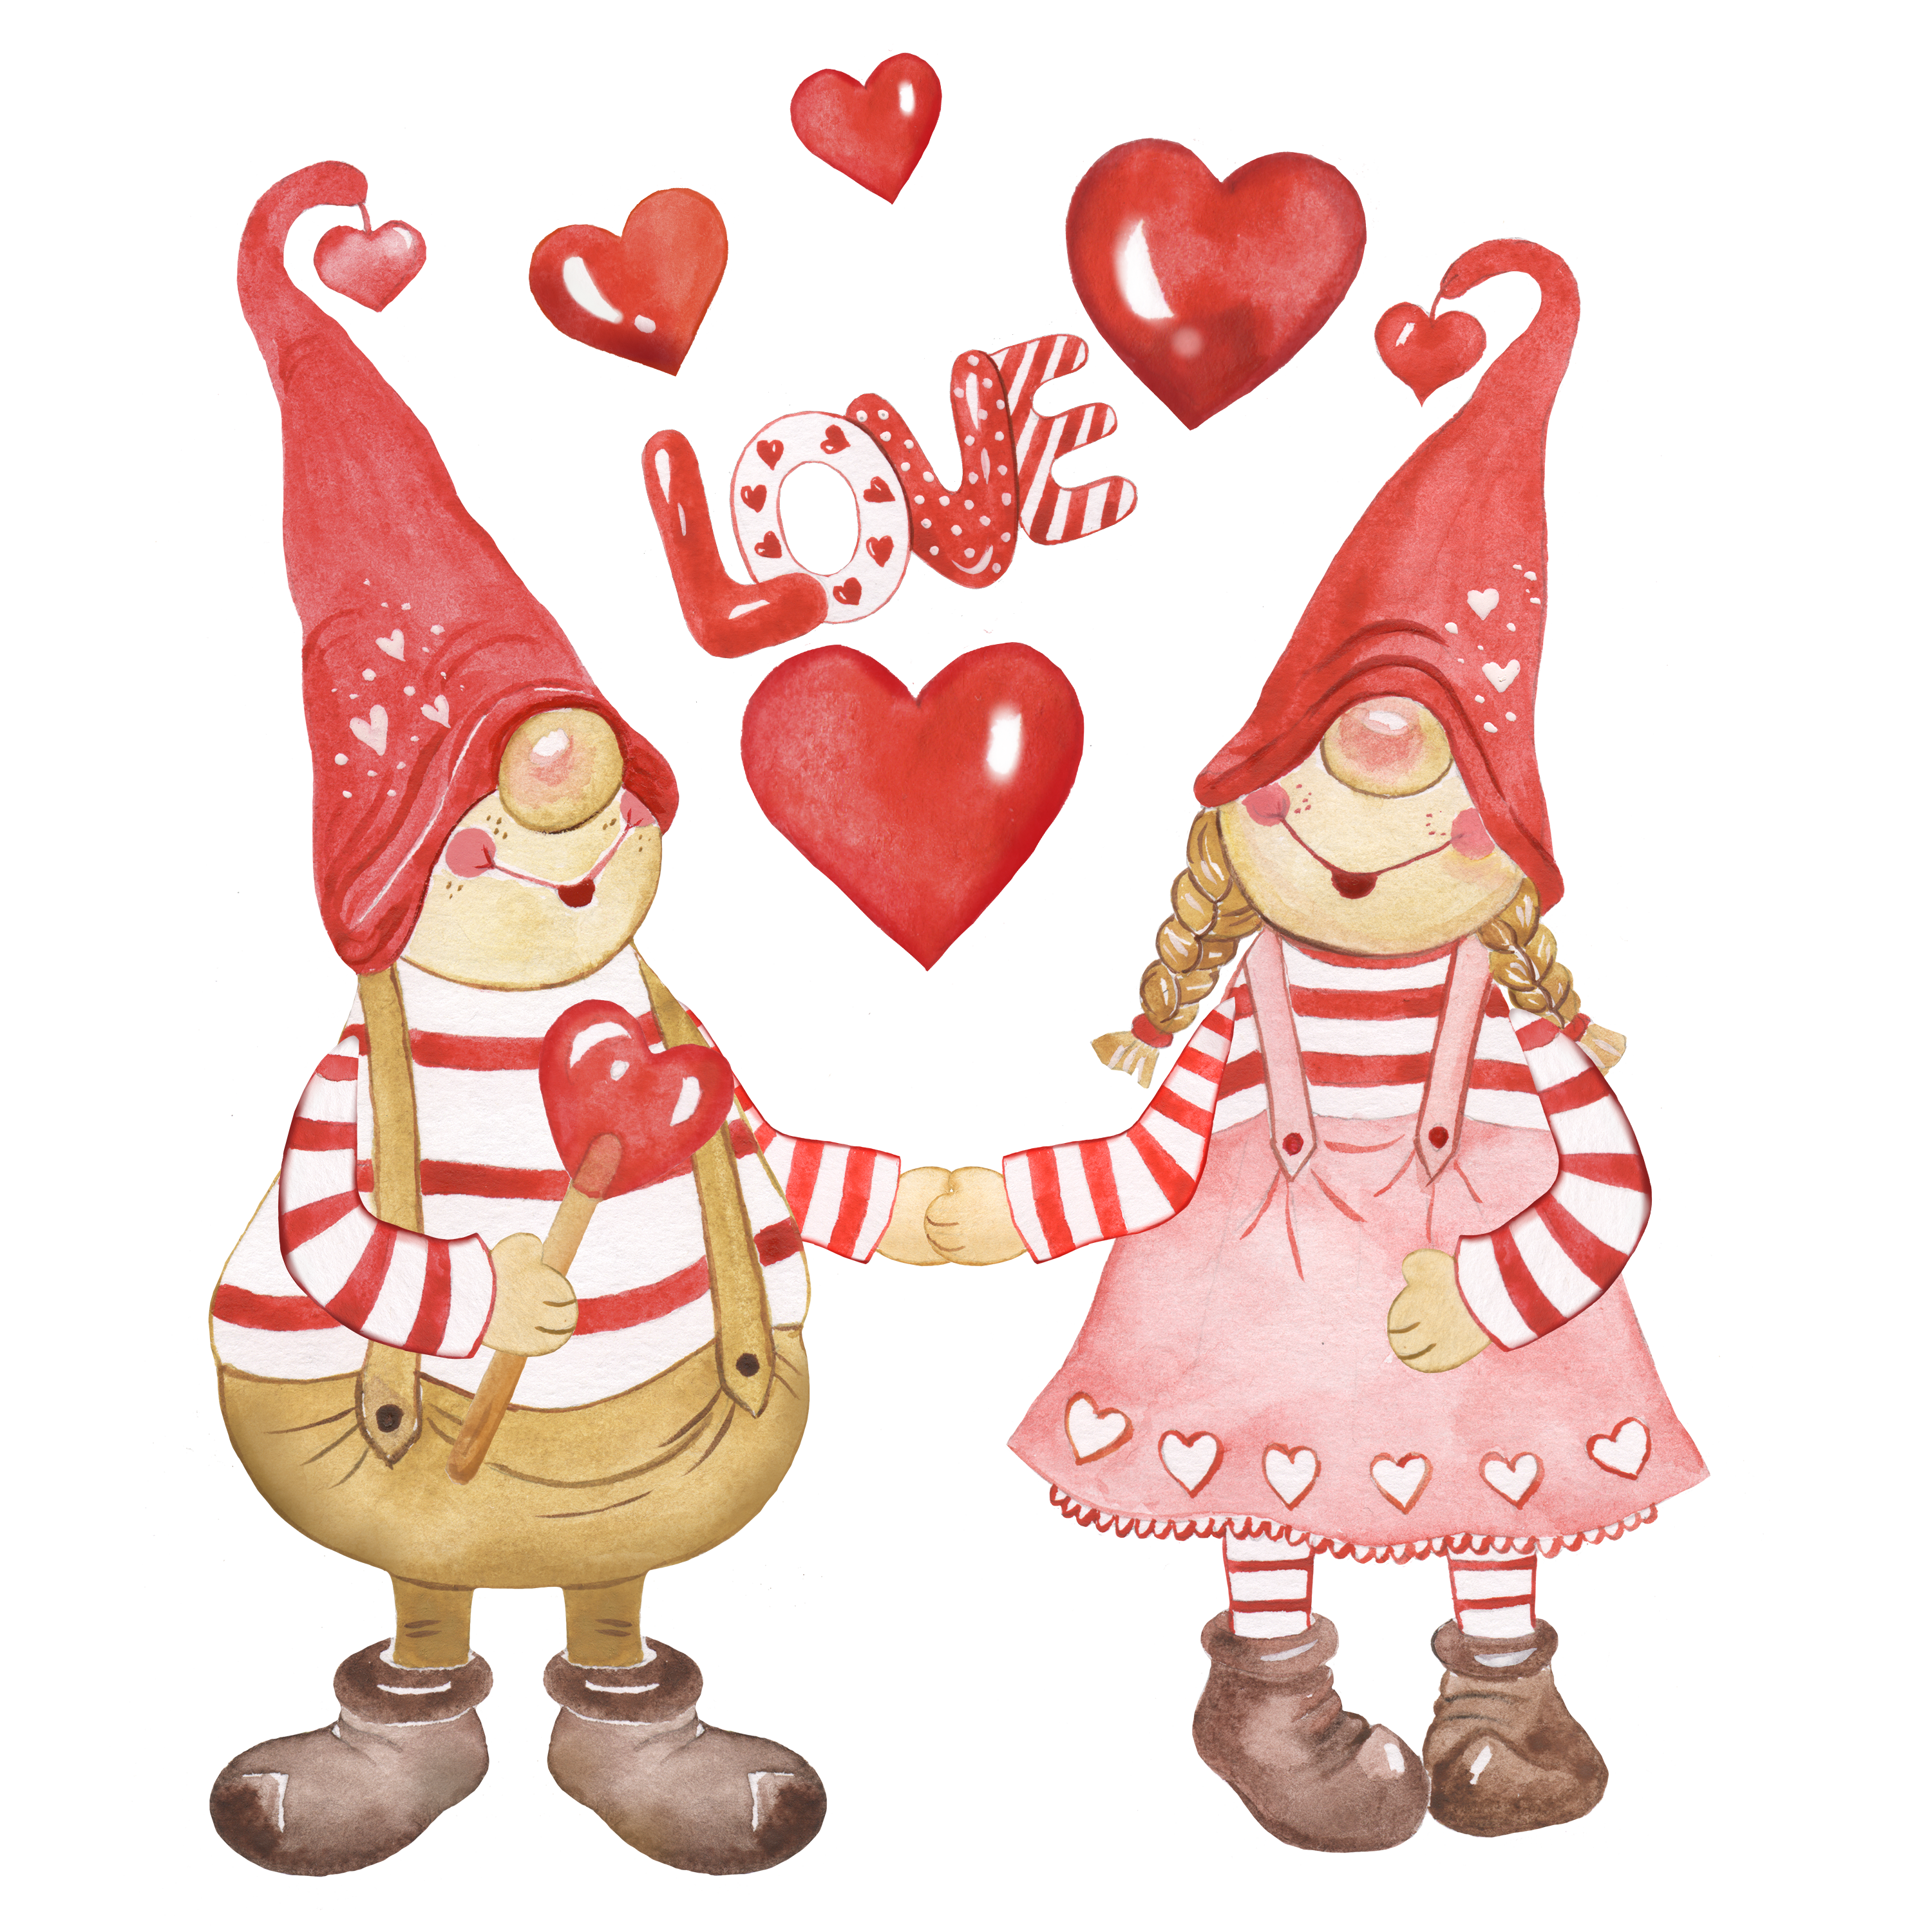 16+ Valentines day clipart images ideas in 2021